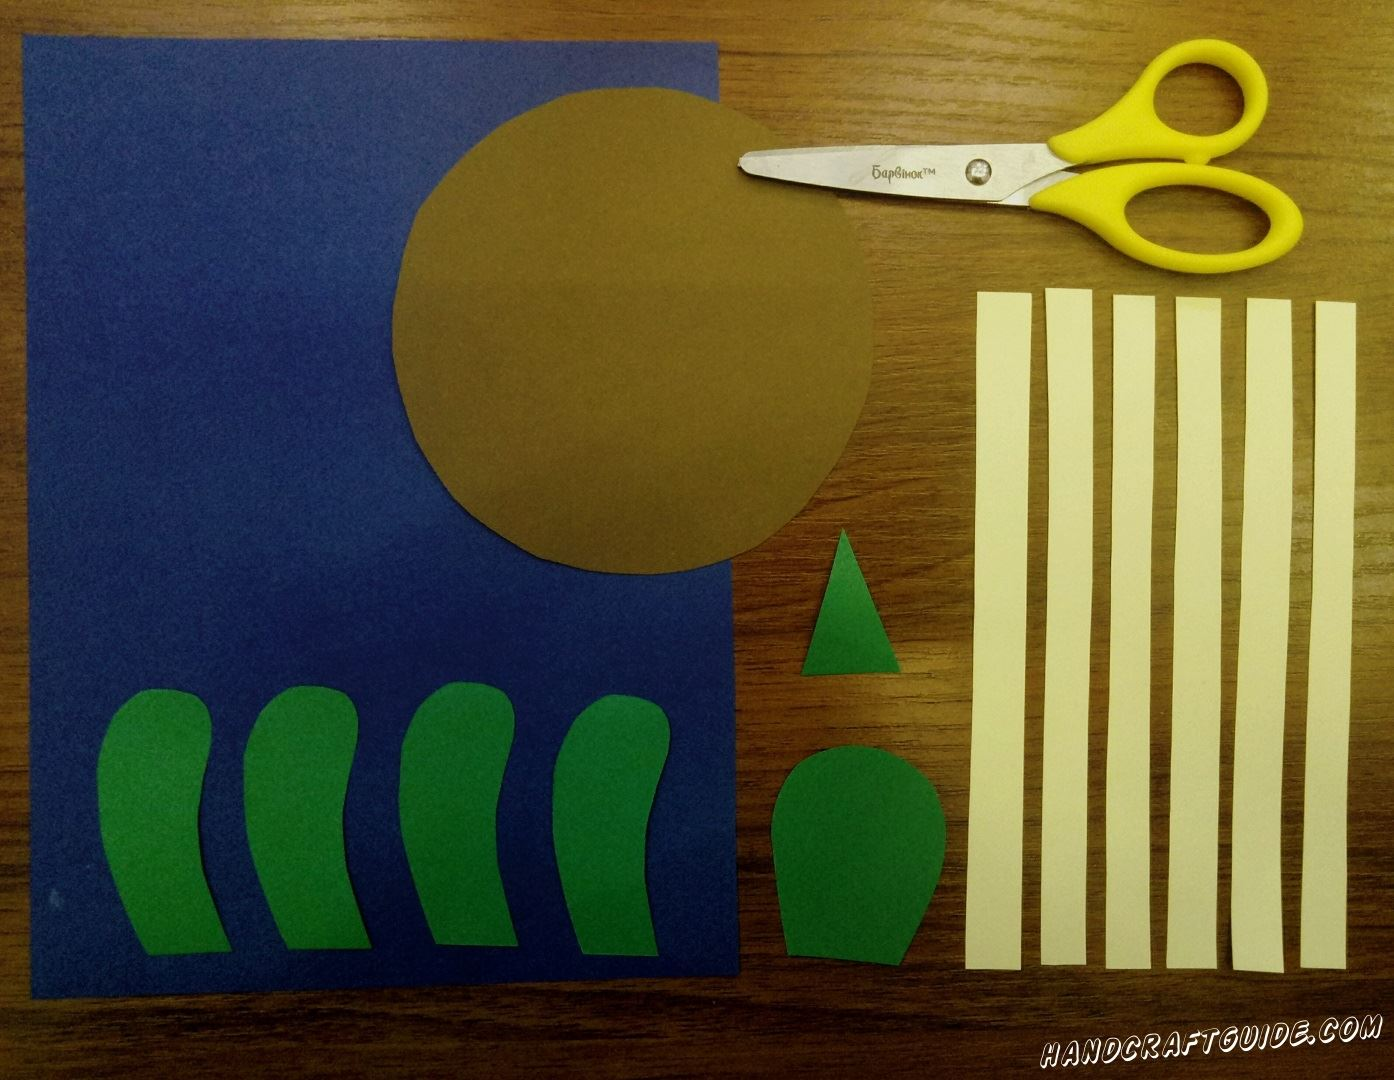 First take brown paper and cut out big circle. Then take green paper and cut out 4 details, short bent stripes with rounded edges on one side, which resemble paws. Do not postpone the green paper, because we need to cut out a small triangle and a detailresembling a balloon with a trimmed narrowed side. And finish with 6 identical stripes of yellow color. Well done, let's continue ...